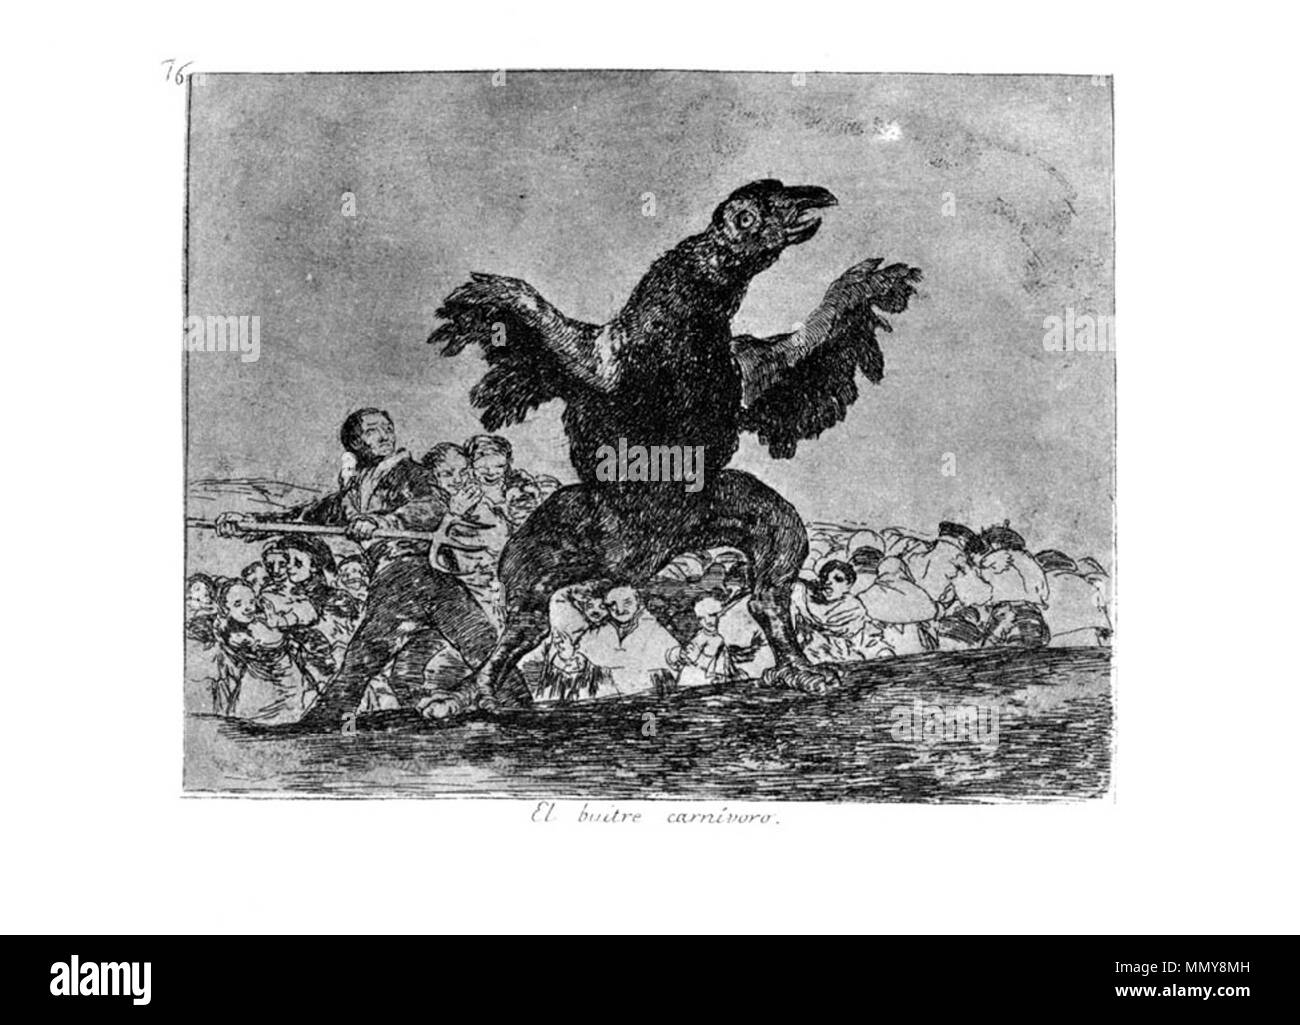 .  Plate 76: El buitre carnivoro (The carnivorous vulture)  . 1810s.   Francisco Goya (1746–1828)   Alternative names Francisco Goya Lucientes, Francisco de Goya y Lucientes, Francisco José Goya Lucientes  Description Spanish painter, printmaker, lithographer, engraver and etcher  Date of birth/death 30 March 1746 16 April 1828  Location of birth/death Fuendetodos Bordeaux  Work location Madrid, Zaragoza, Bordeaux  Authority control  : Q5432 VIAF:?54343141 ISNI:?0000 0001 2280 1608 ULAN:?500118936 LCCN:?n79003363 NLA:?36545788 WorldCat Goya-Guerra (76) - Stock Image